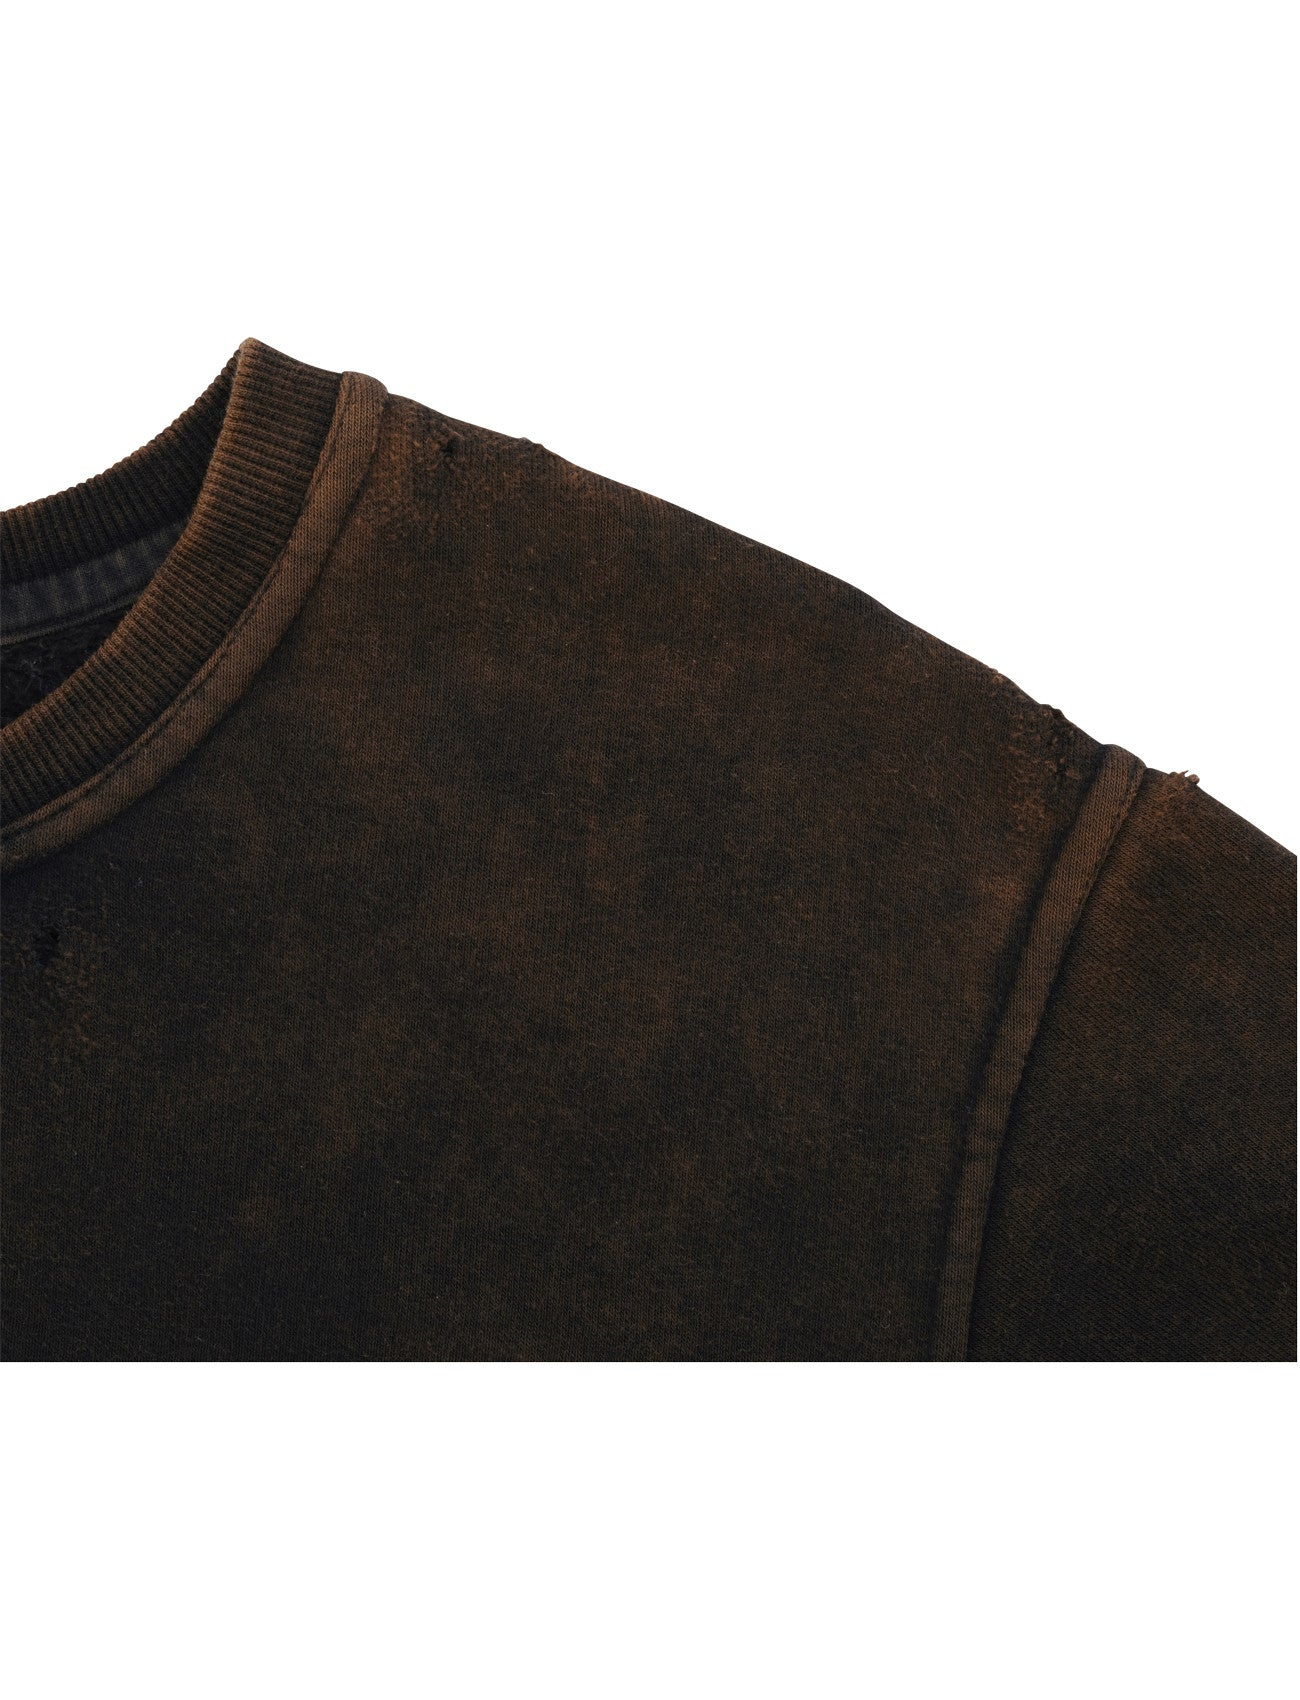 Distressed Crewneck - Rust